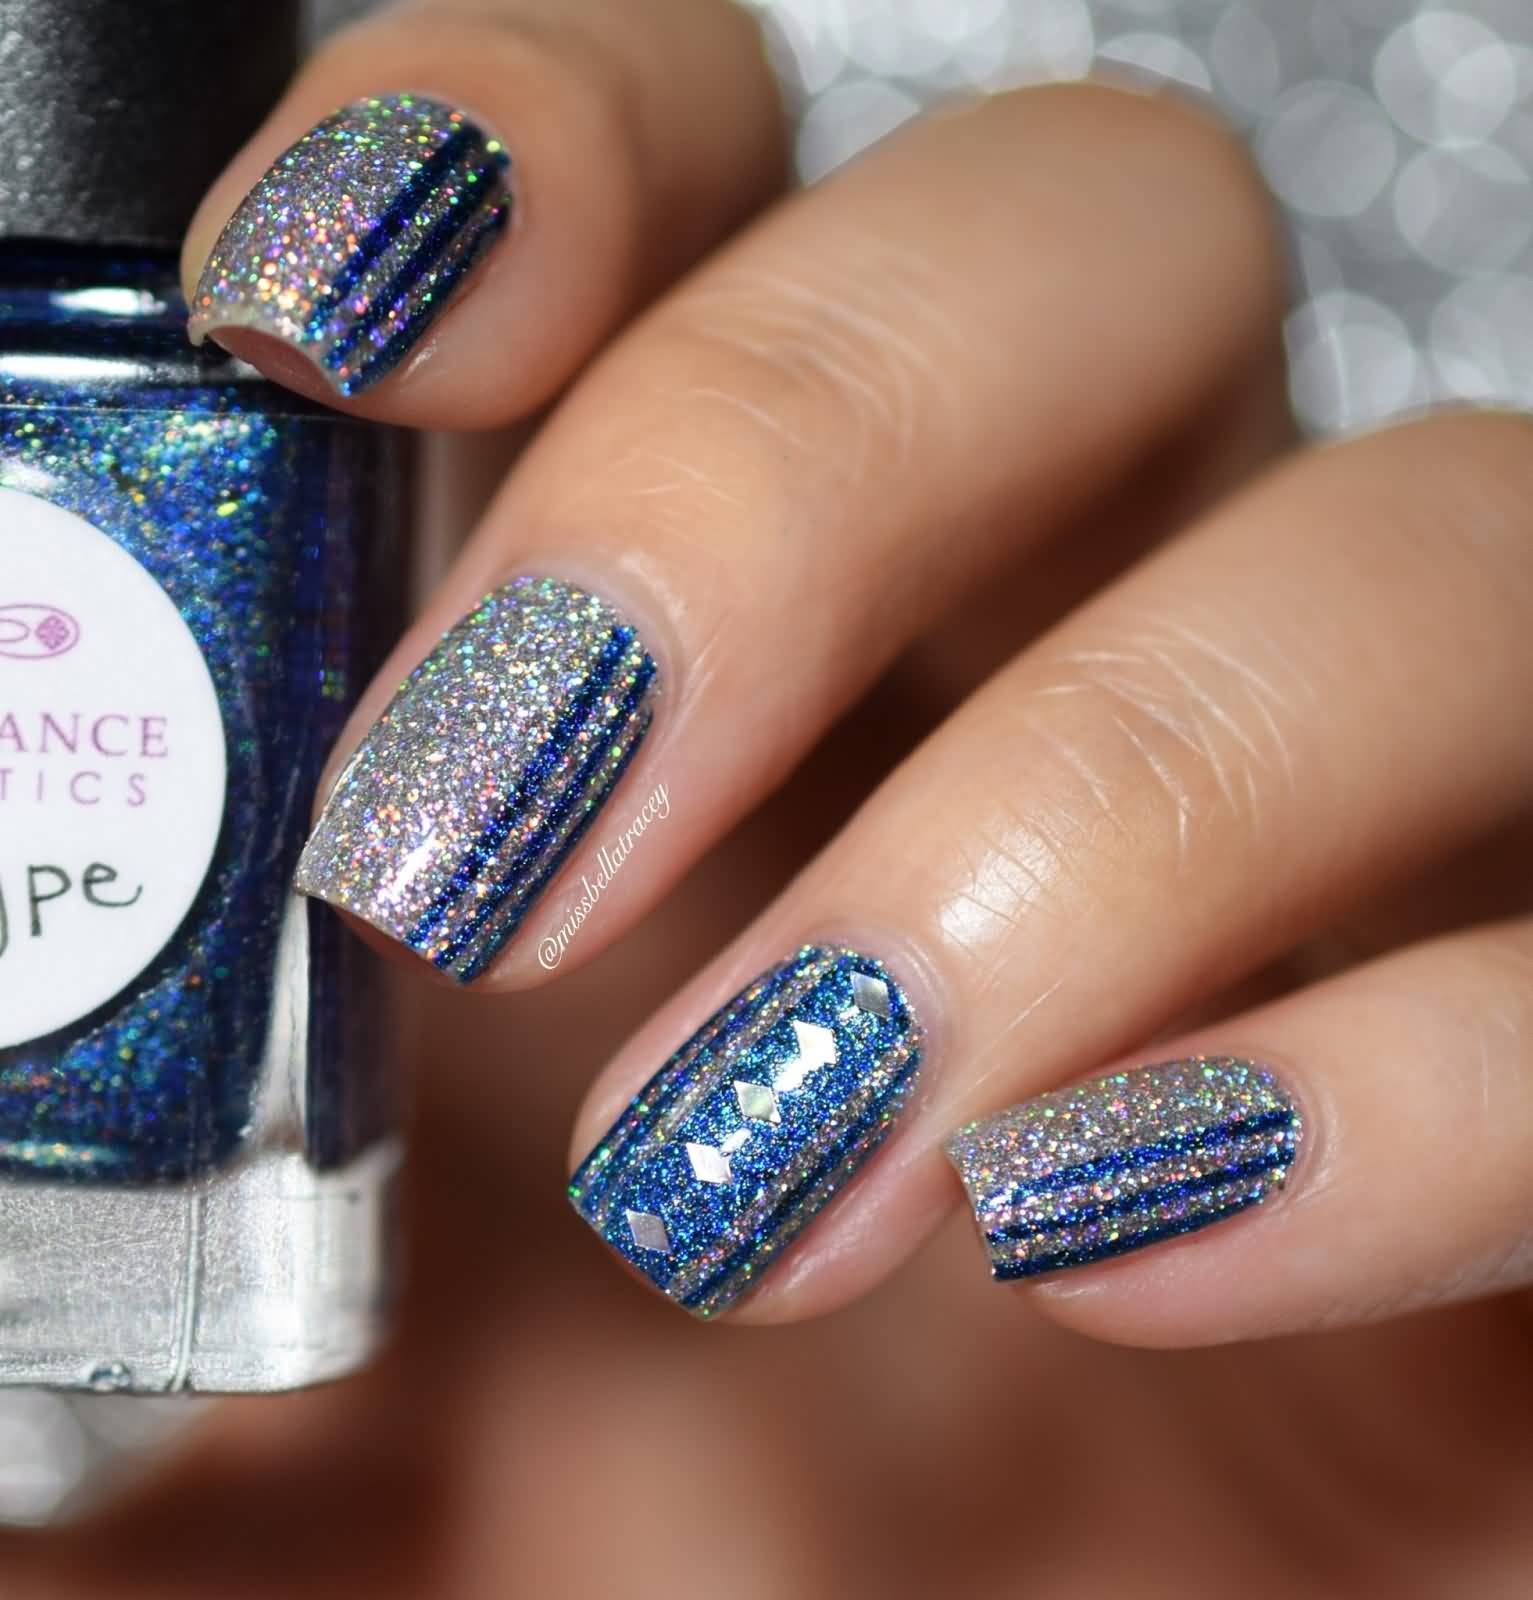 Nail Art Images Blue: 82 Best Blue And Silver Nail Art Design Ideas